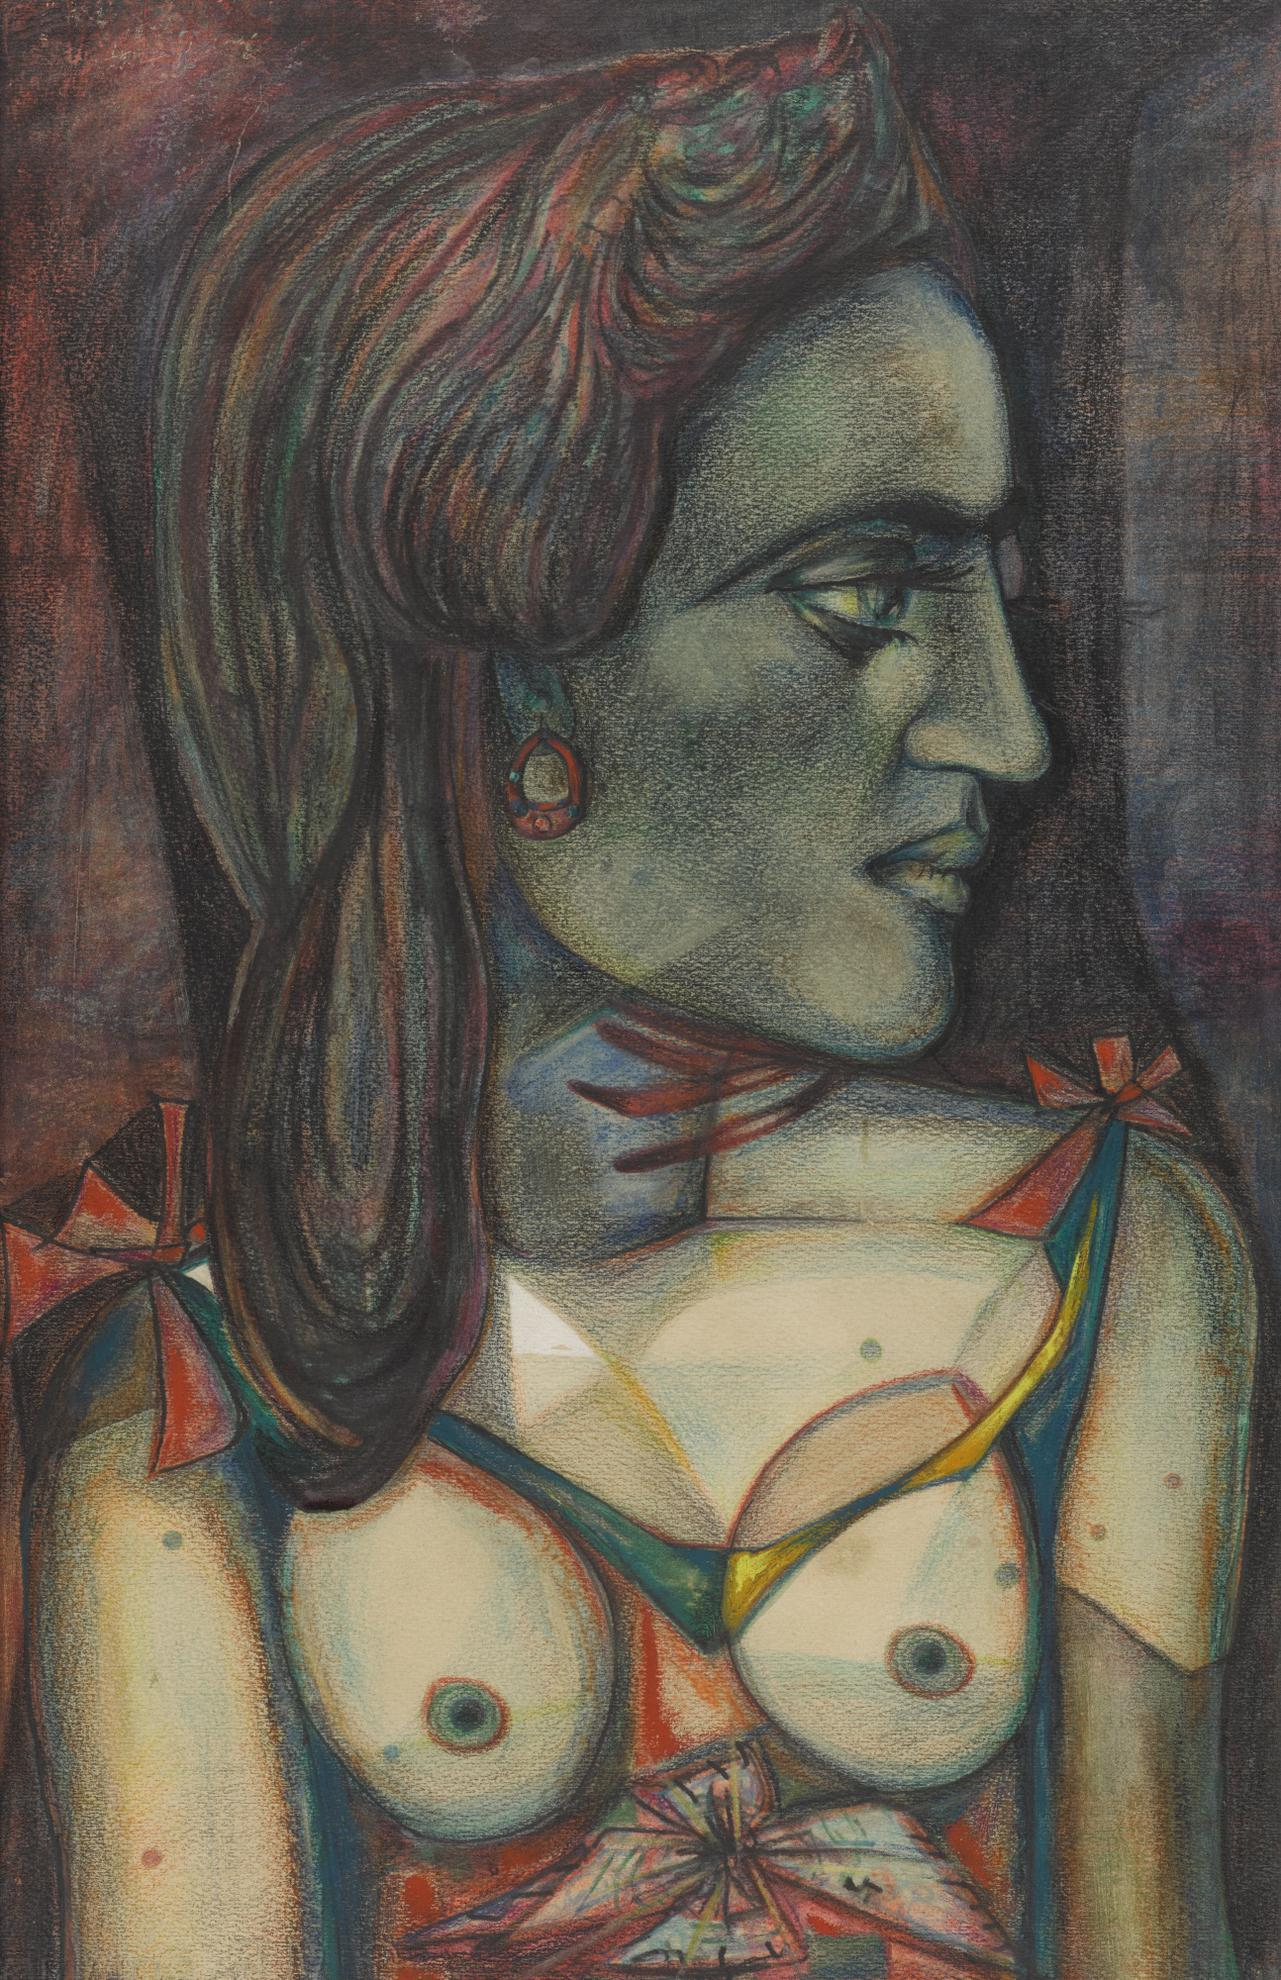 Fouad Kamel - The Green Face-1956